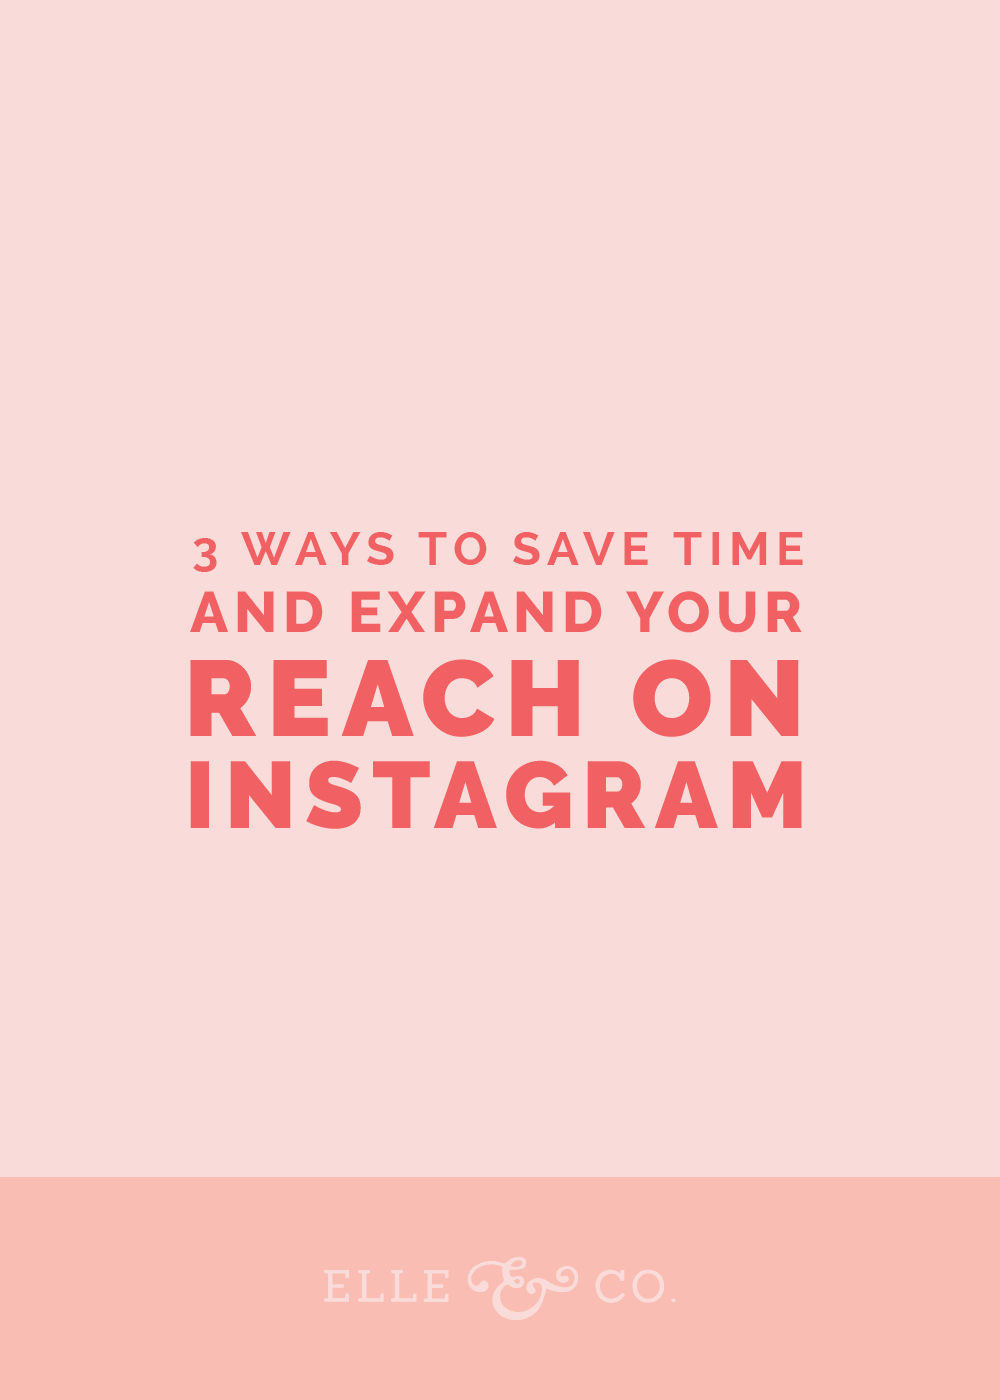 3 Ways to Save Time and Expand Your Reach on Instagram - Elle & Company